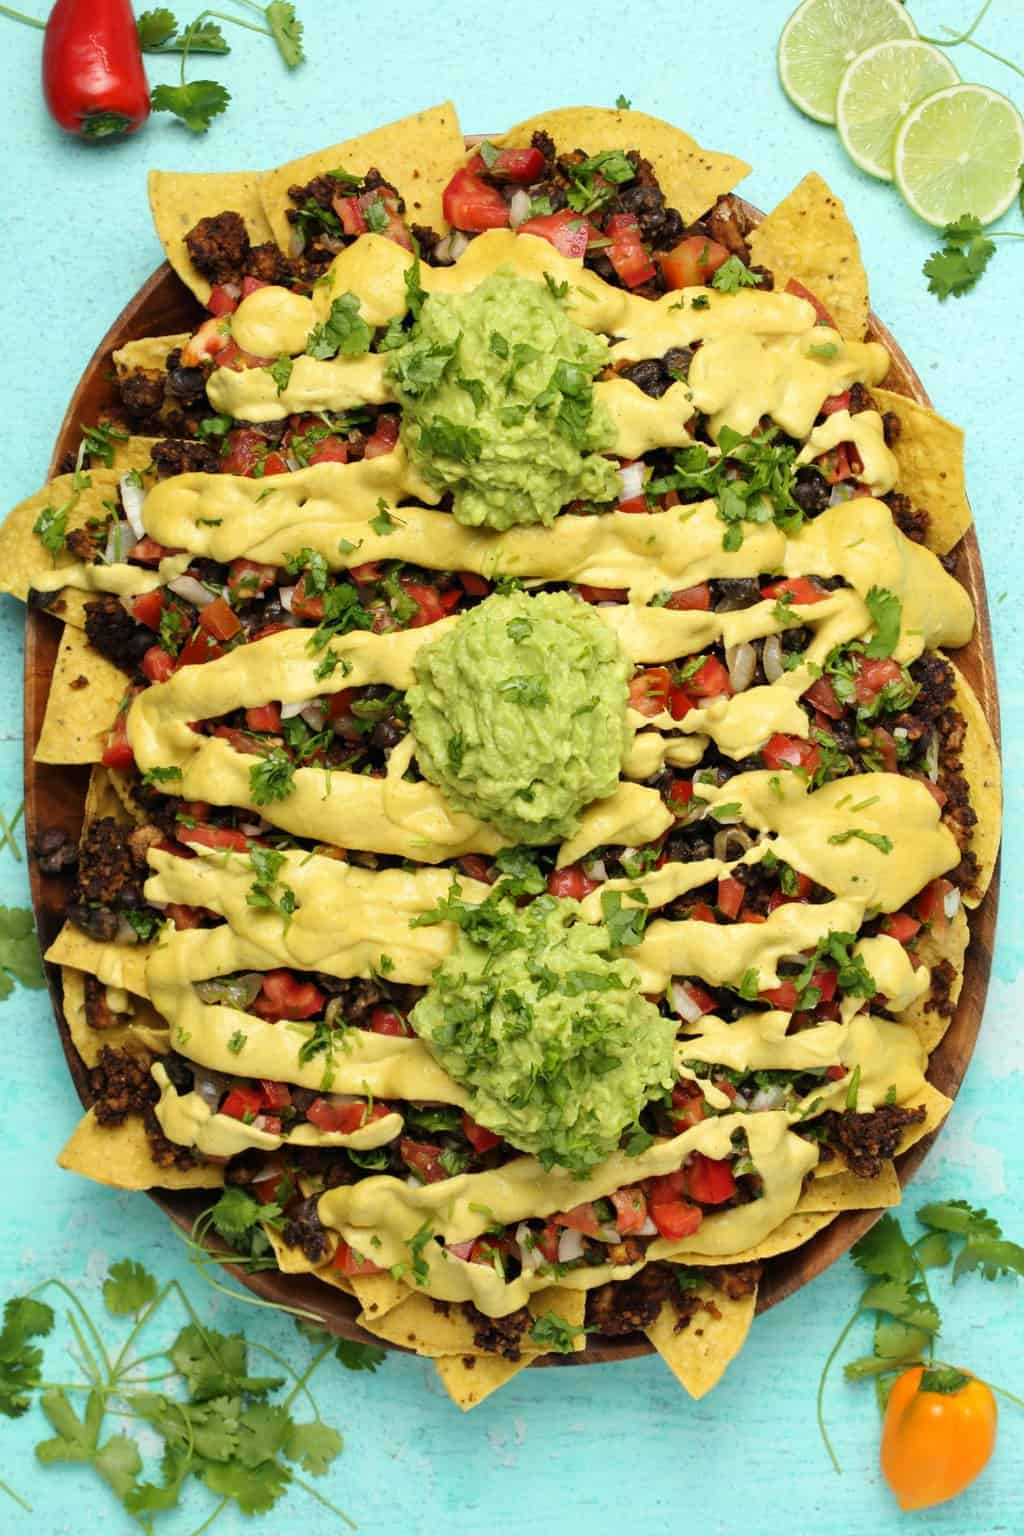 Fully loaded vegan nachos served on a wooden platter.